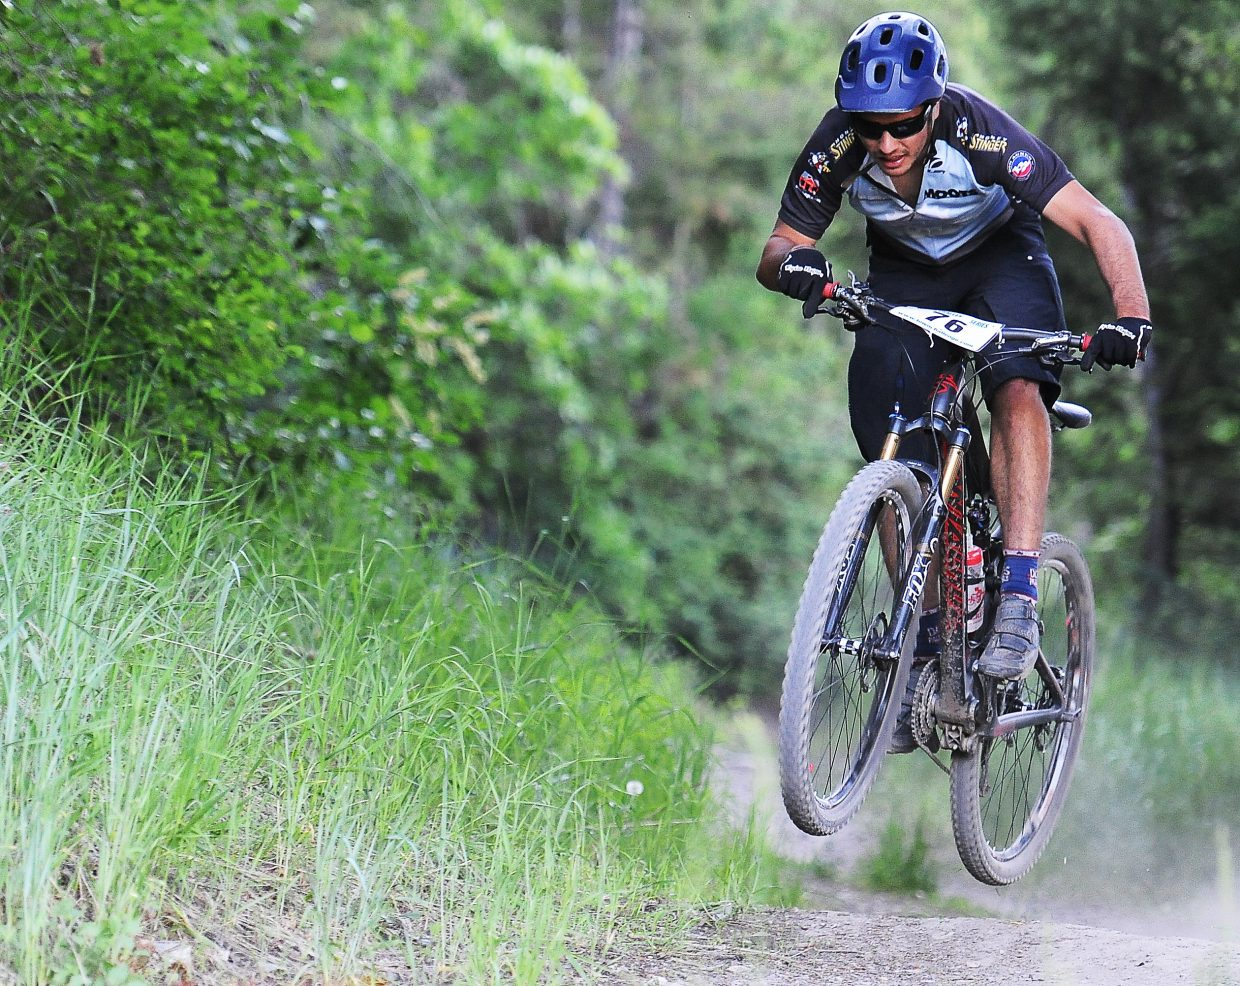 Jeff Minotto catches some air racing during a Town Challenge mountain bike race at Howelsen Hill earlier this month. The race series returns Wednesday for a race at Steamboat Ski Area.